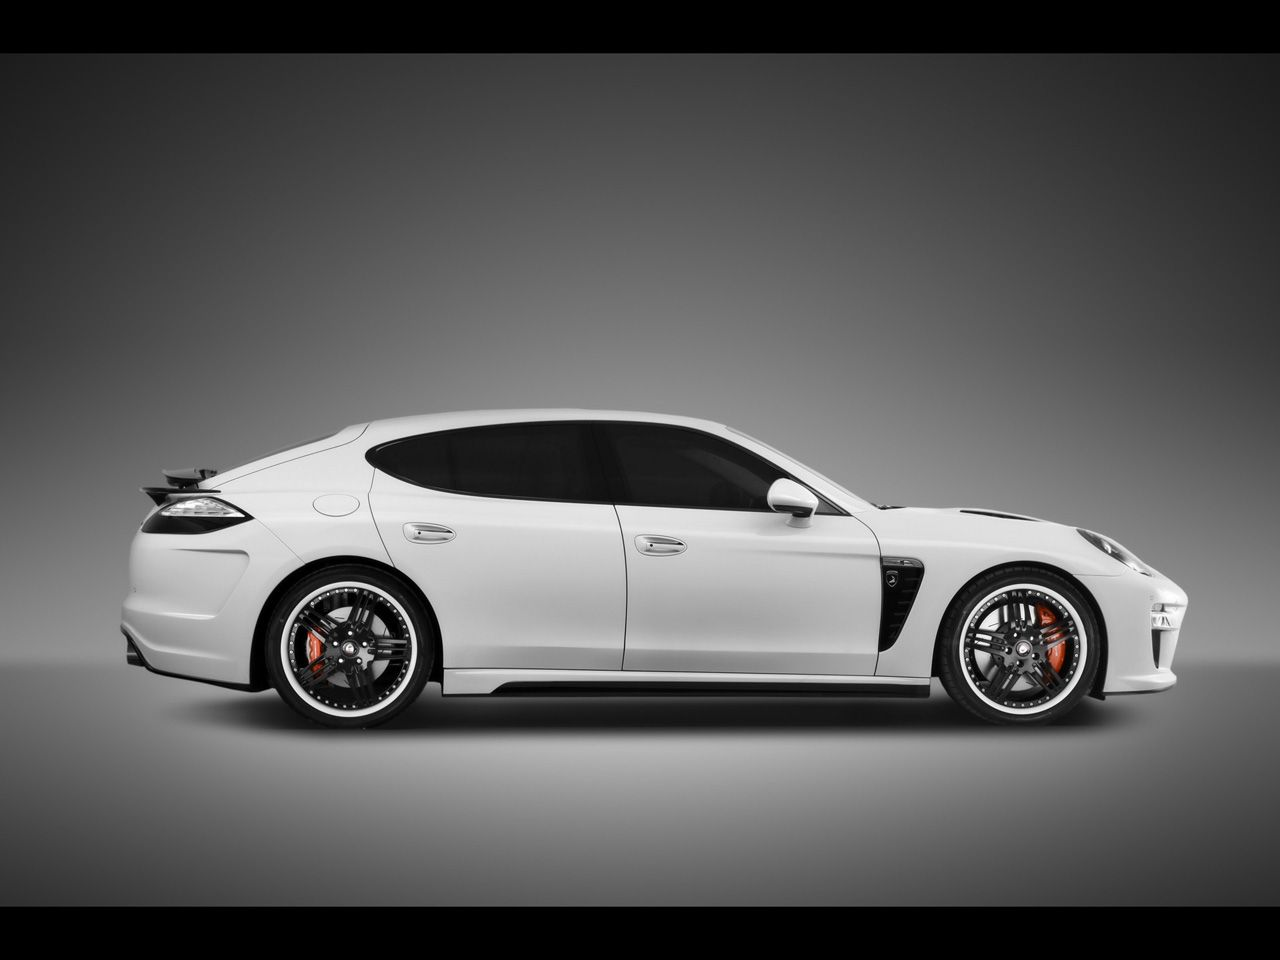 White Porsche Panamera   Wheely Cool Vehicles  Pinterest